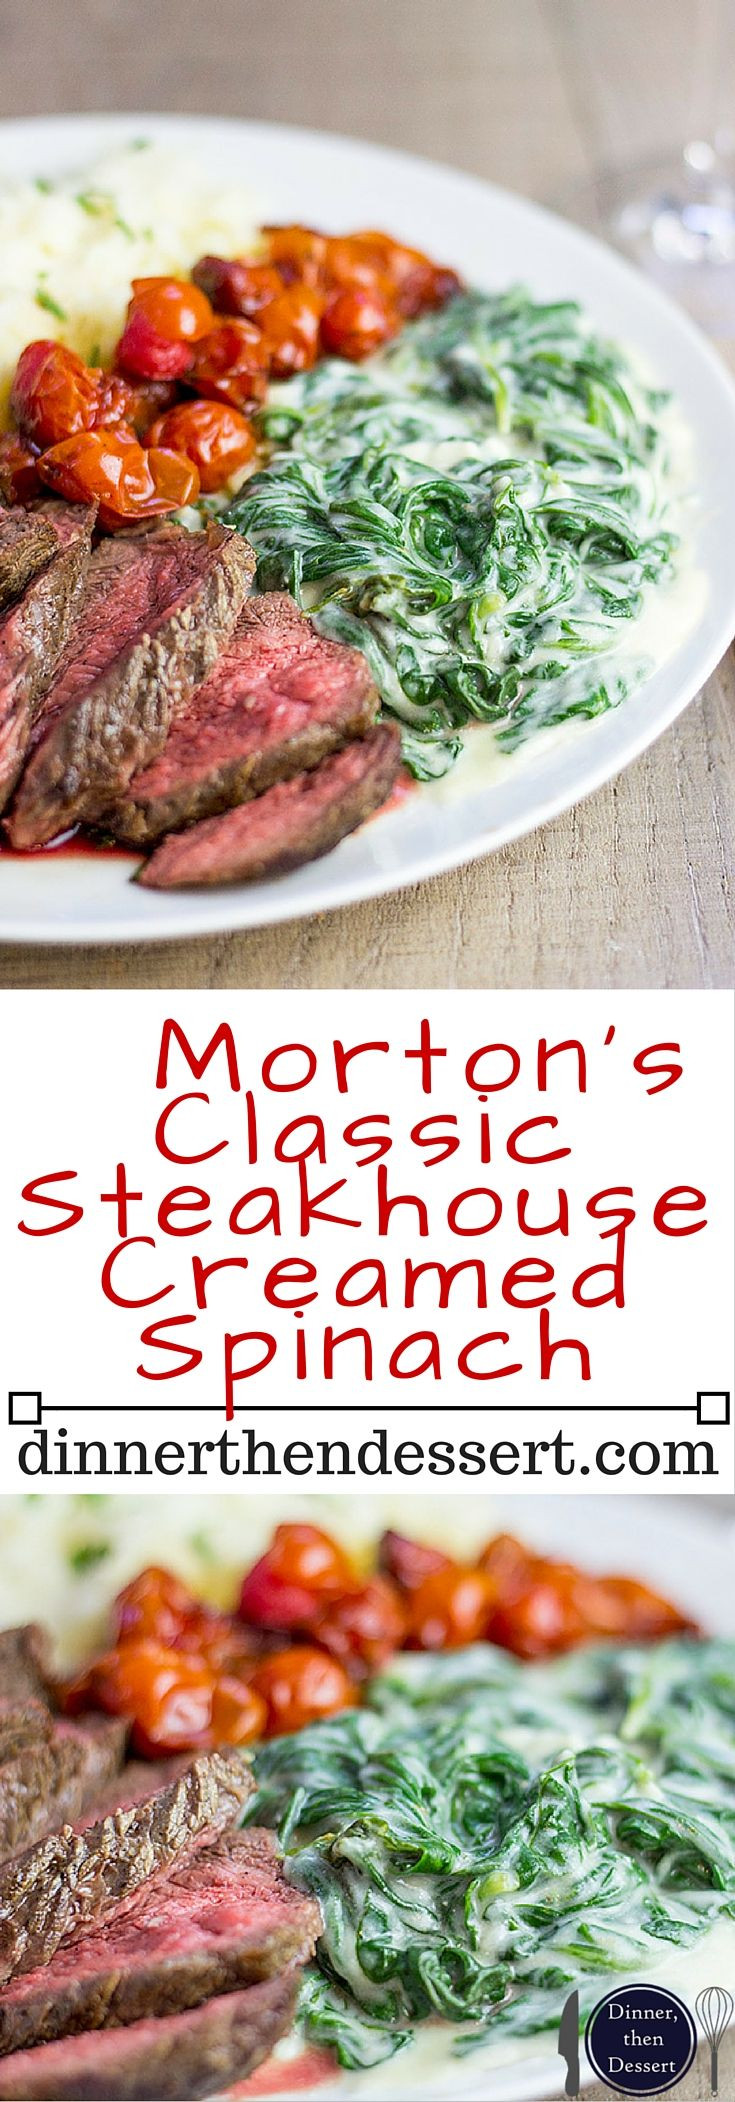 Side Dishes For Prime Rib Dinner Christmas  17 Best ideas about Prime Steakhouse on Pinterest